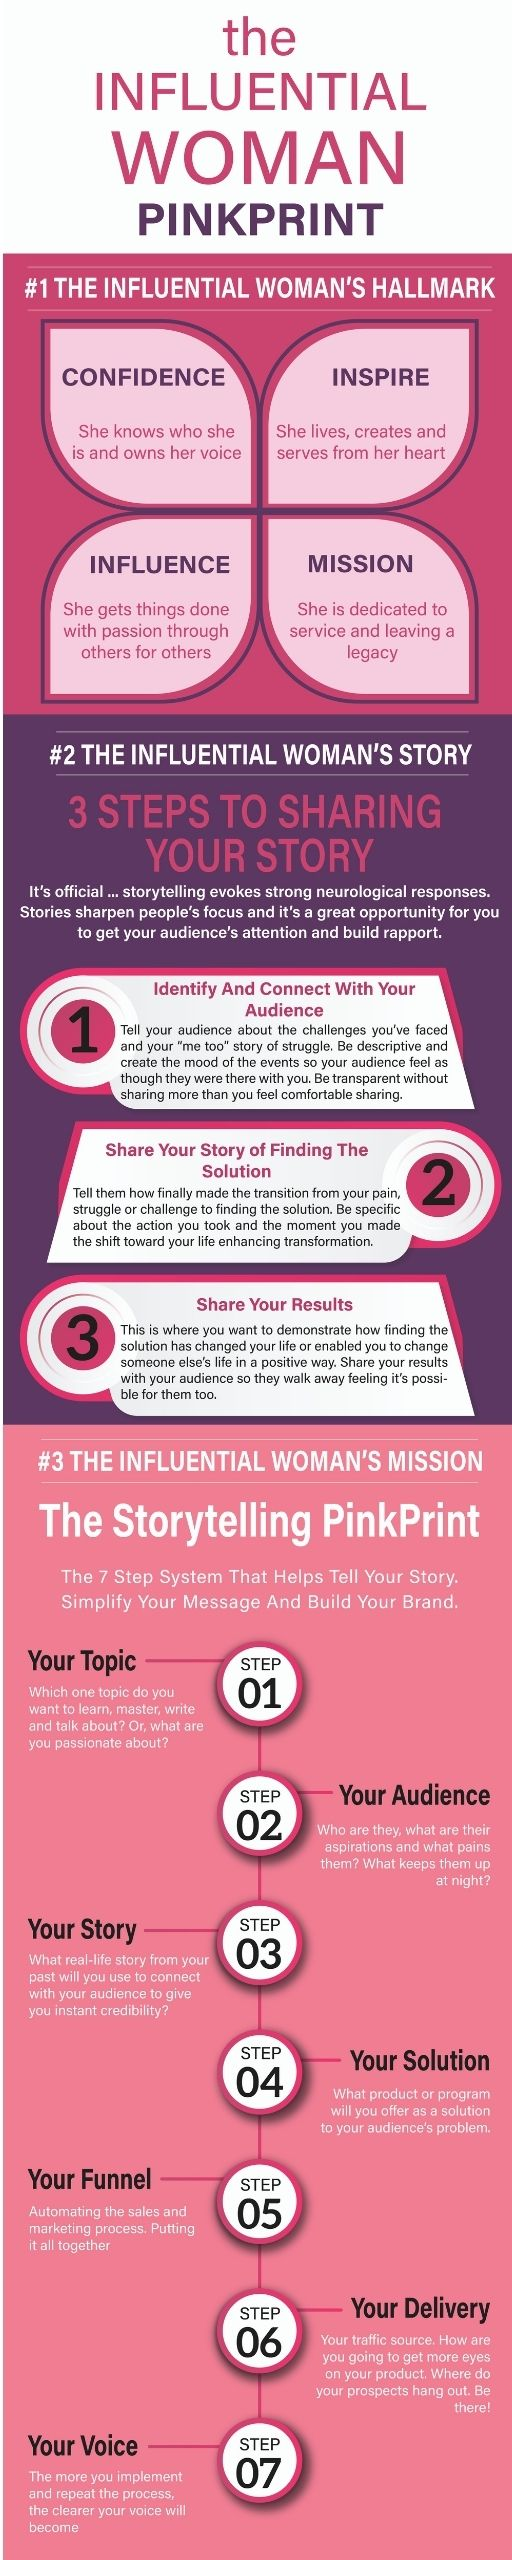 The Influential Woman Framework Infographic